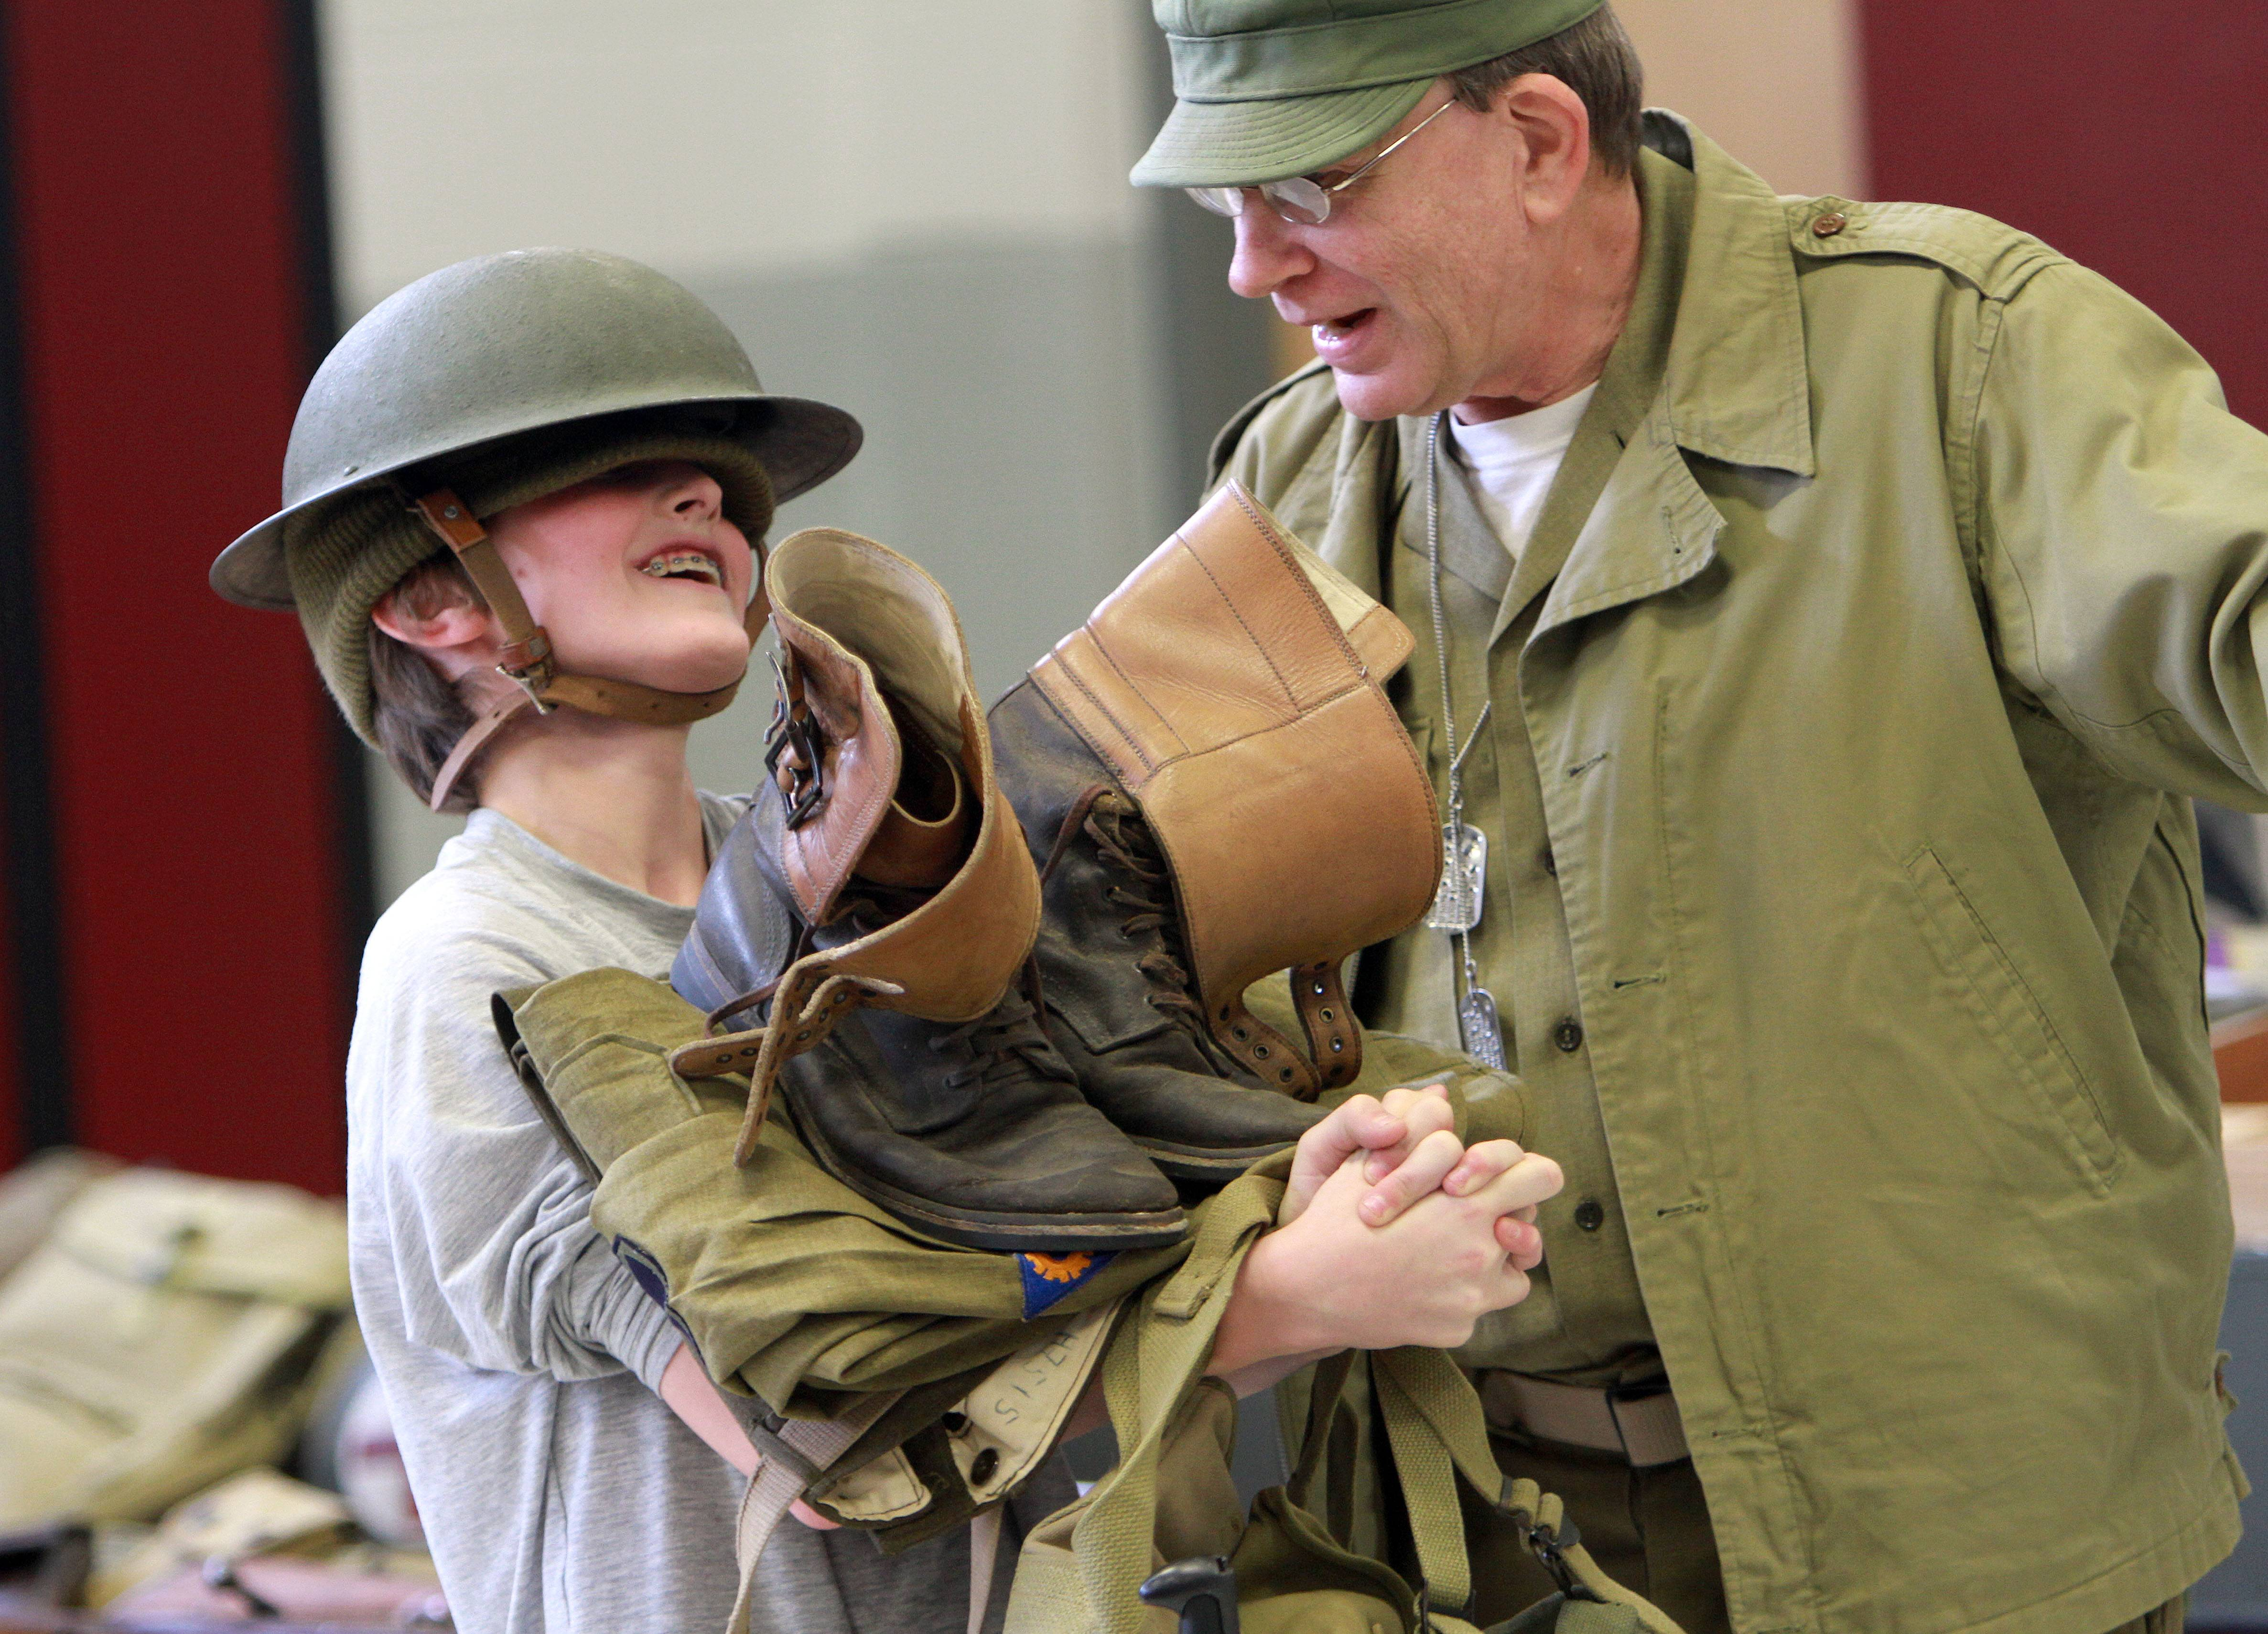 Eighth-grader Hunter Lasky is loaded down with an army uniform by World War II re-enactor Phil Lauricella of Elburn on Thursday at Fremont Middle School in Mundelein.